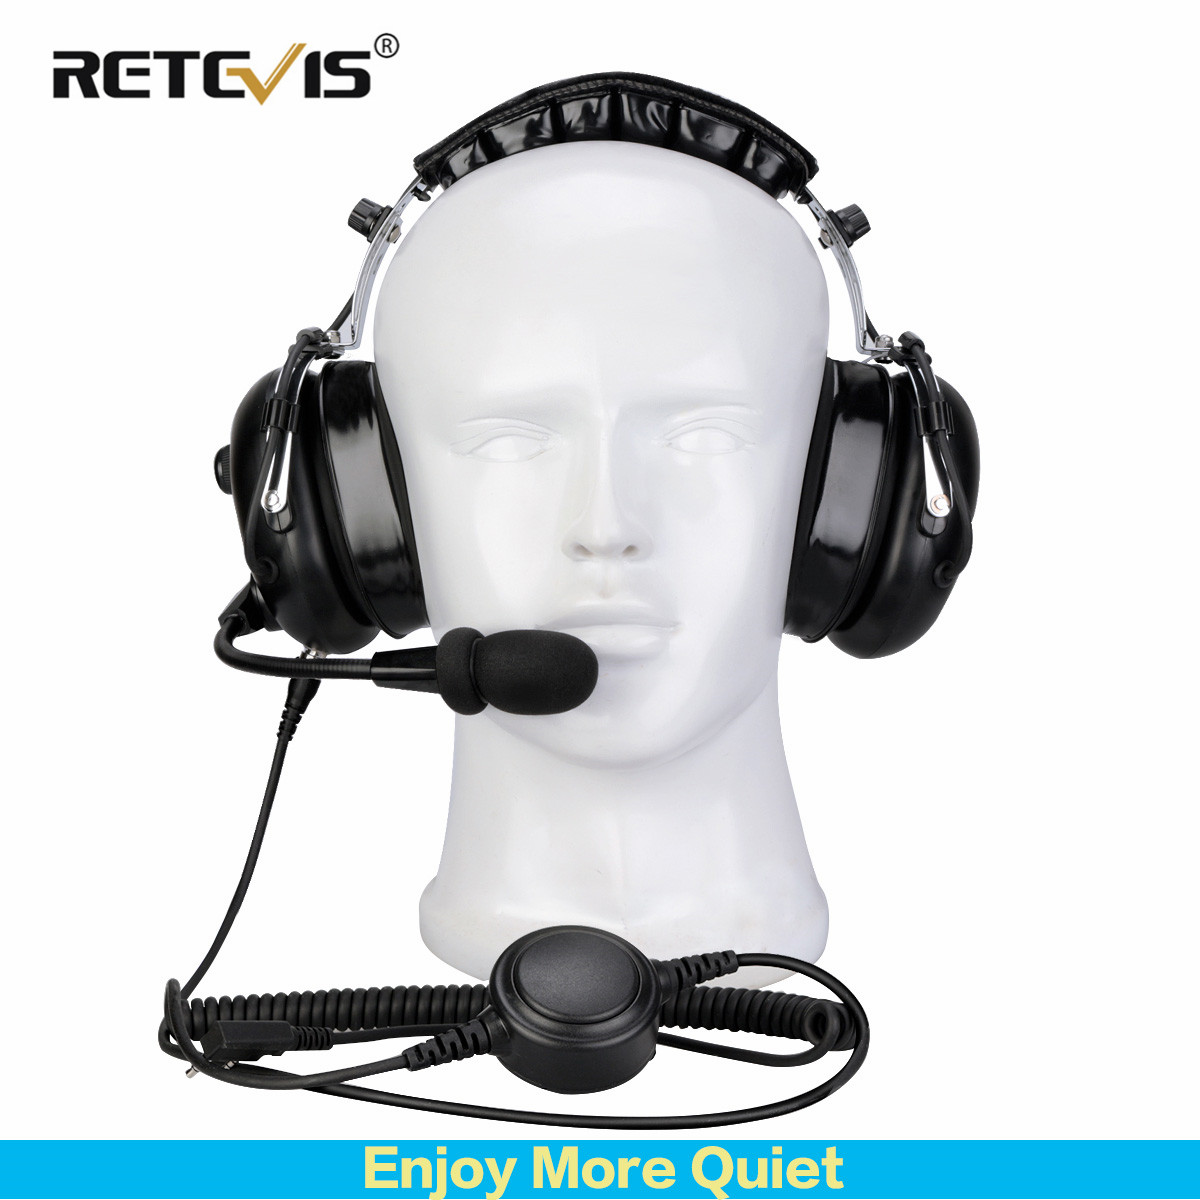 Noise Reduction Headphone Retevis Black EH070K 2 Pin Binaural Sleep Work Headset For Kenwood Baofeng Soundproof 24dB Anti-noise